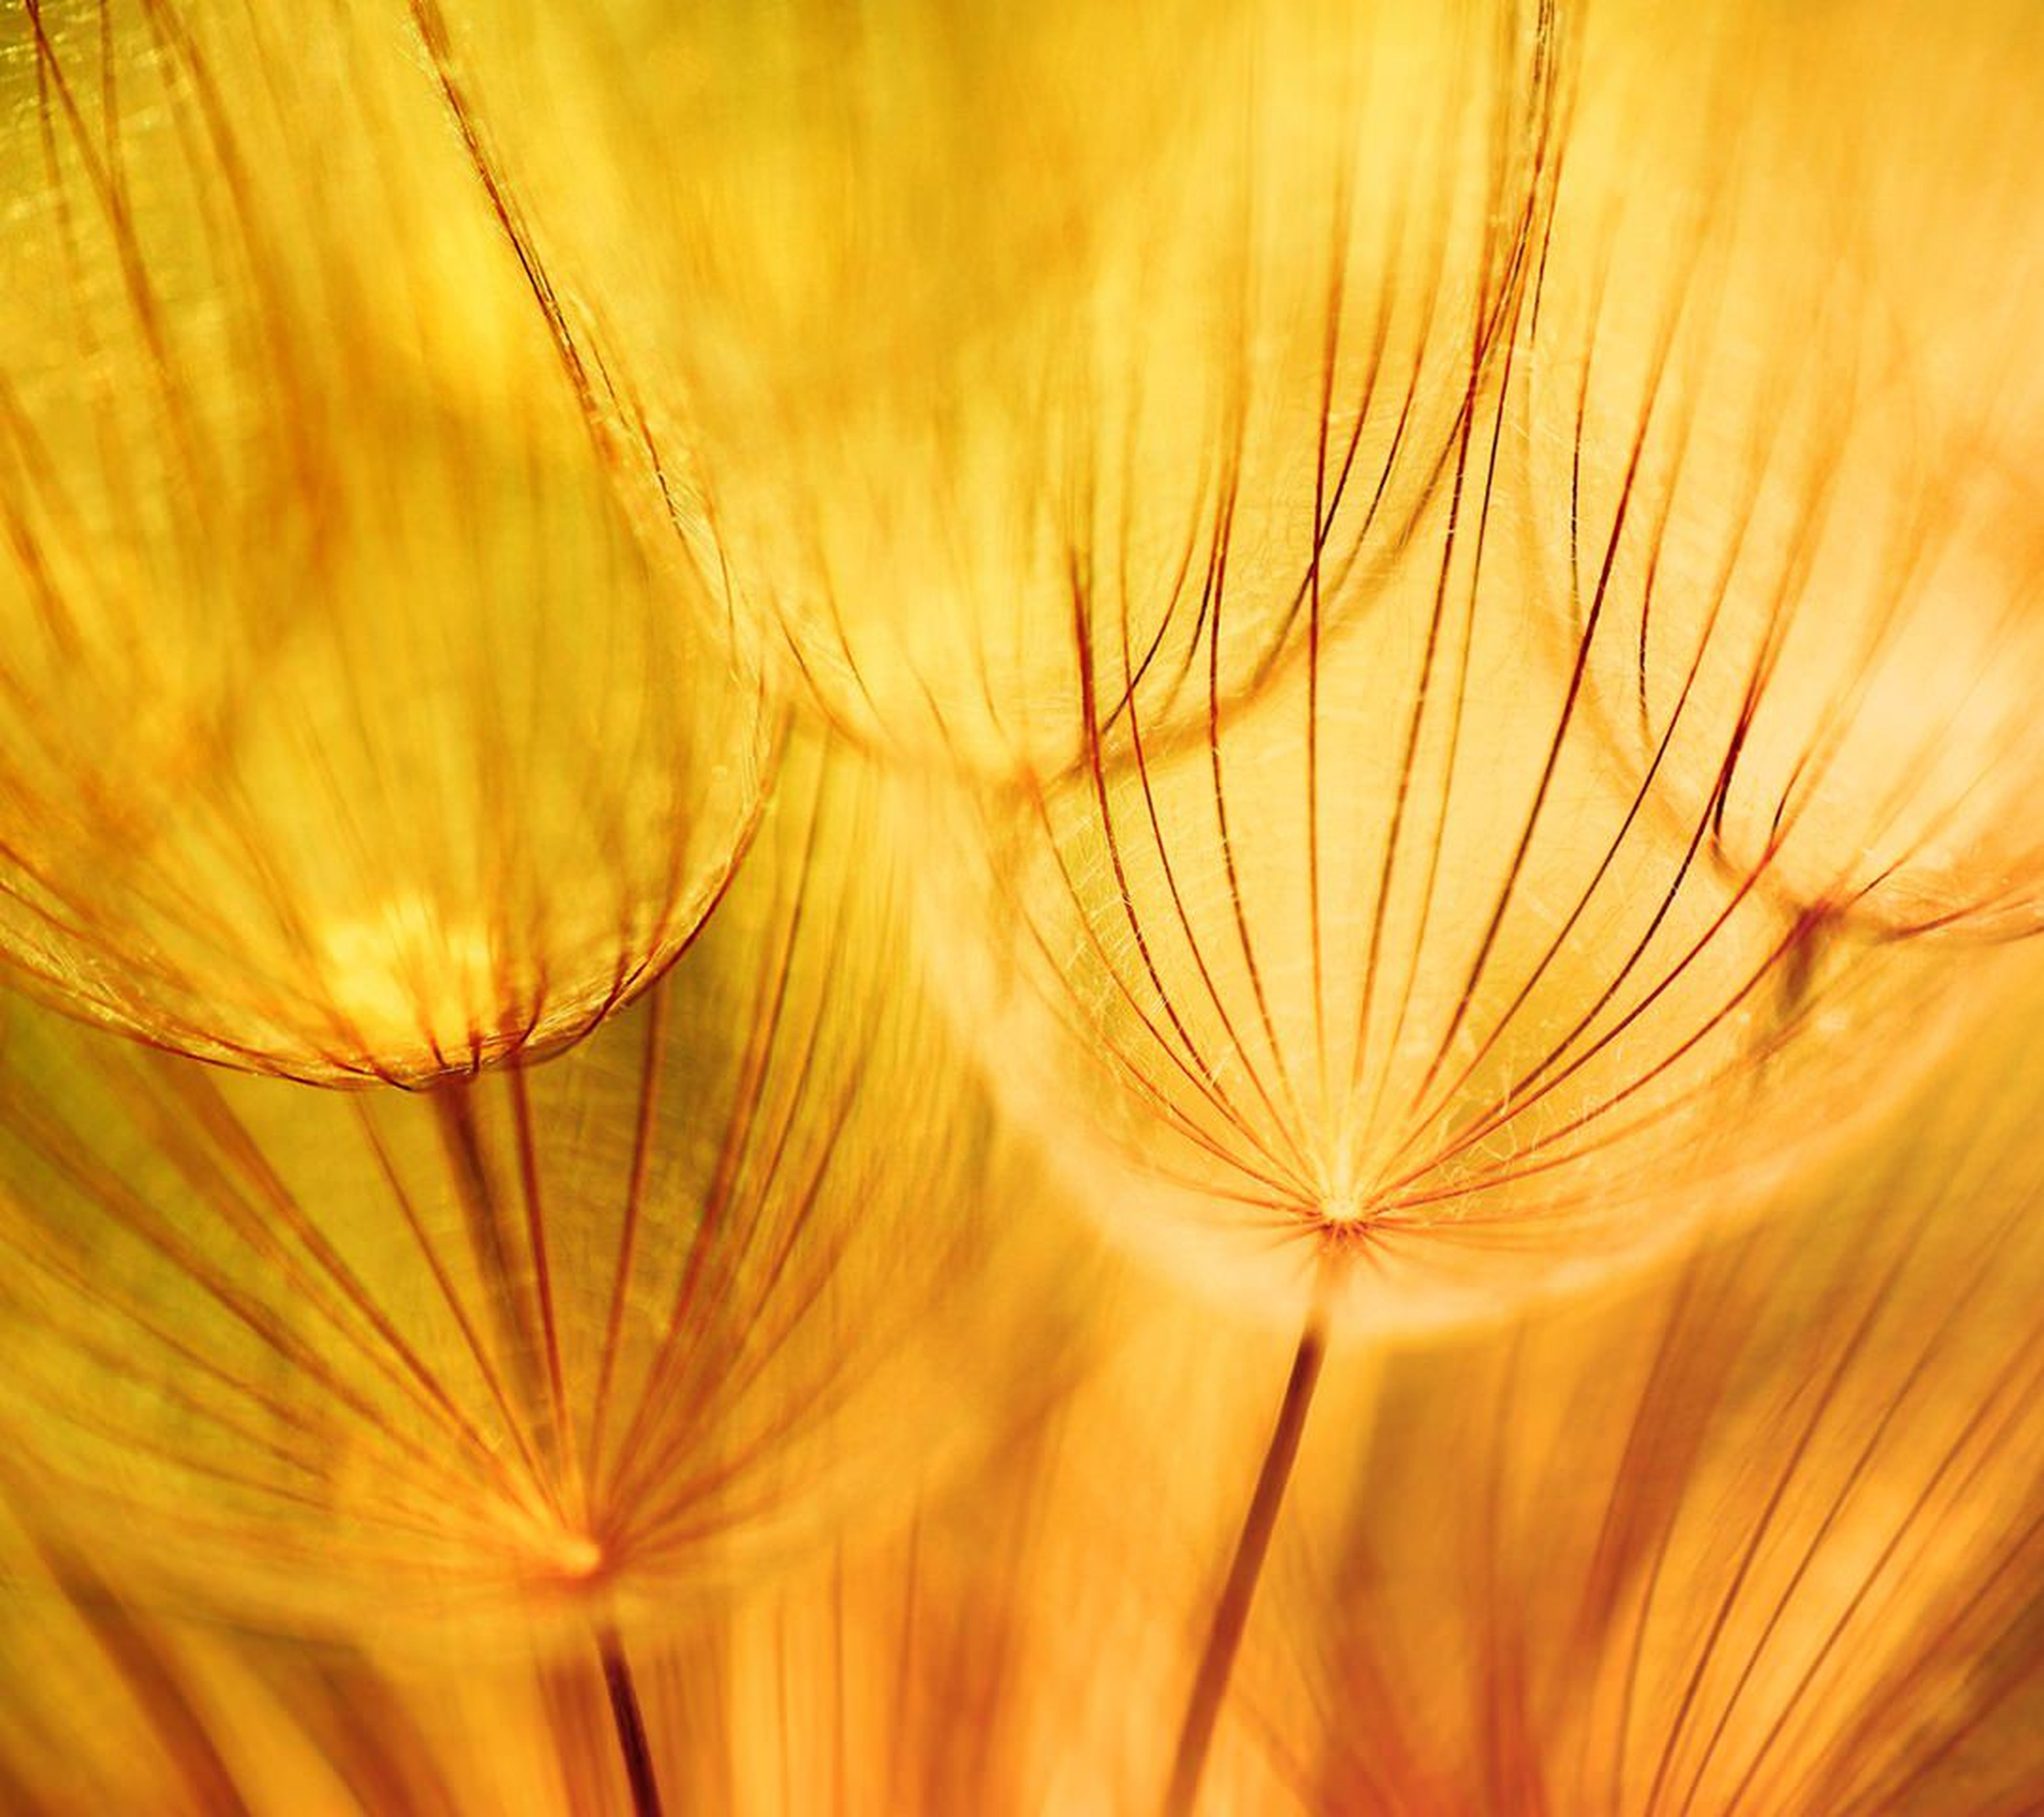 close-up, fragility, full frame, growth, nature, selective focus, backgrounds, beauty in nature, freshness, focus on foreground, plant, orange color, flower, detail, no people, macro, stem, natural pattern, outdoors, yellow